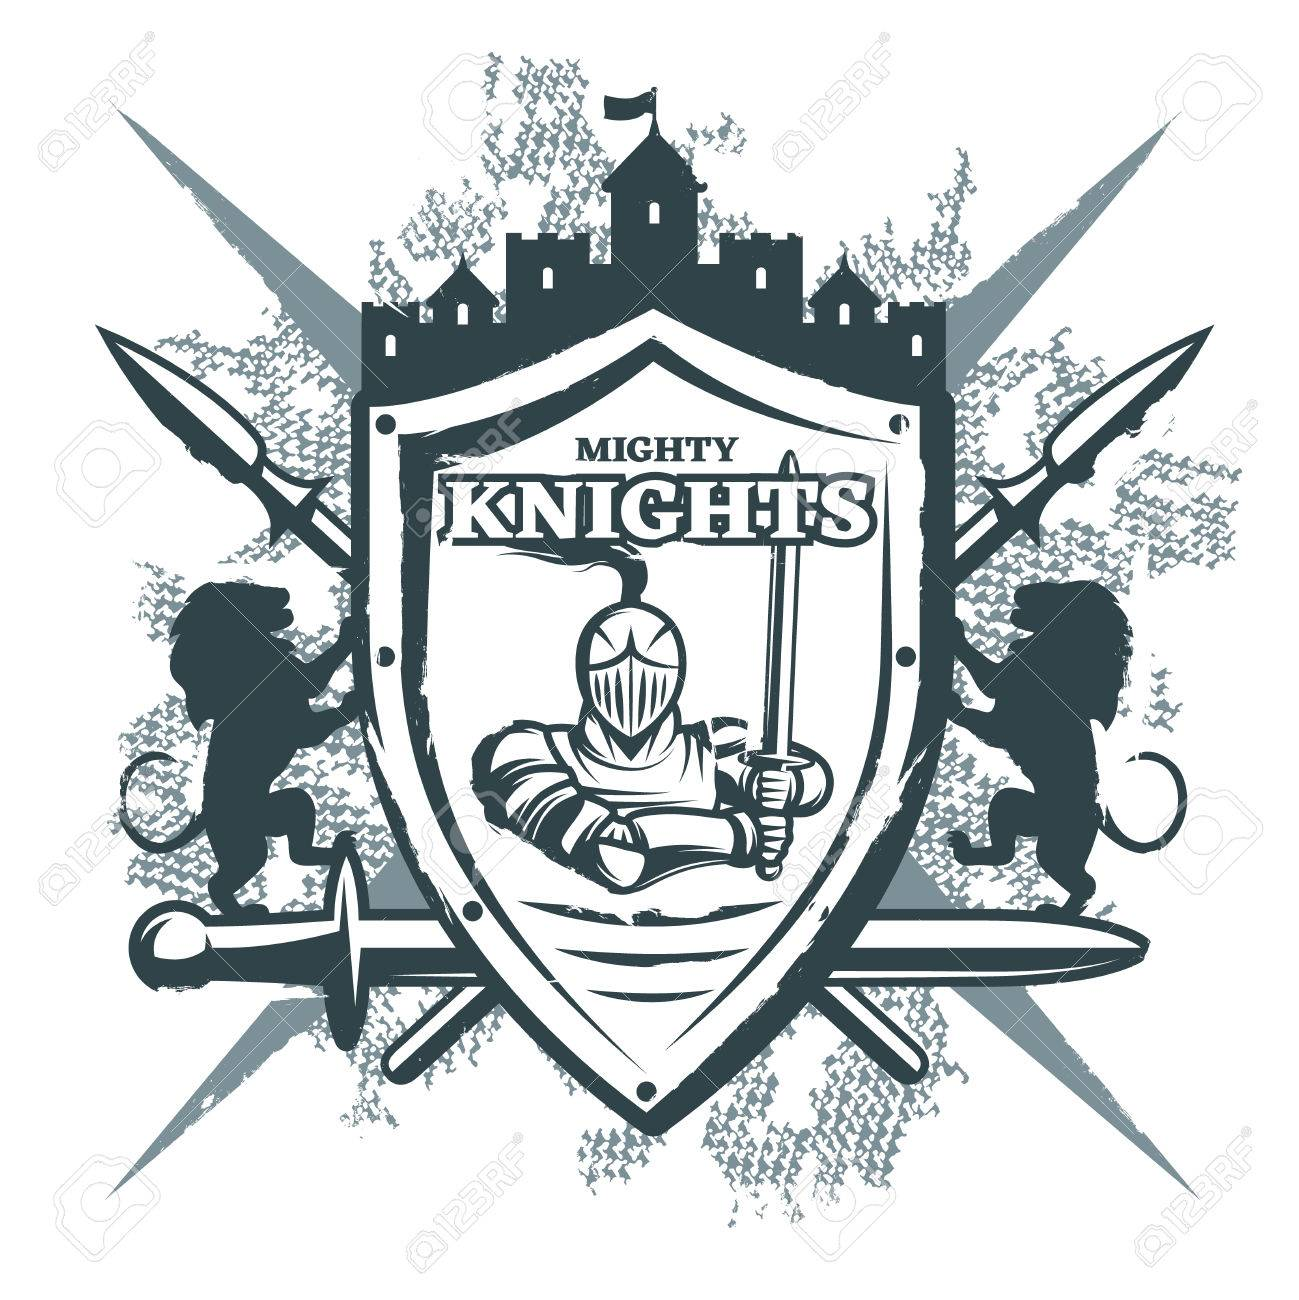 Mighty knights print with warrior at shield castle crossed weapon mighty knights print with warrior at shield castle crossed weapon heraldic symbols on grunge background vector biocorpaavc Gallery